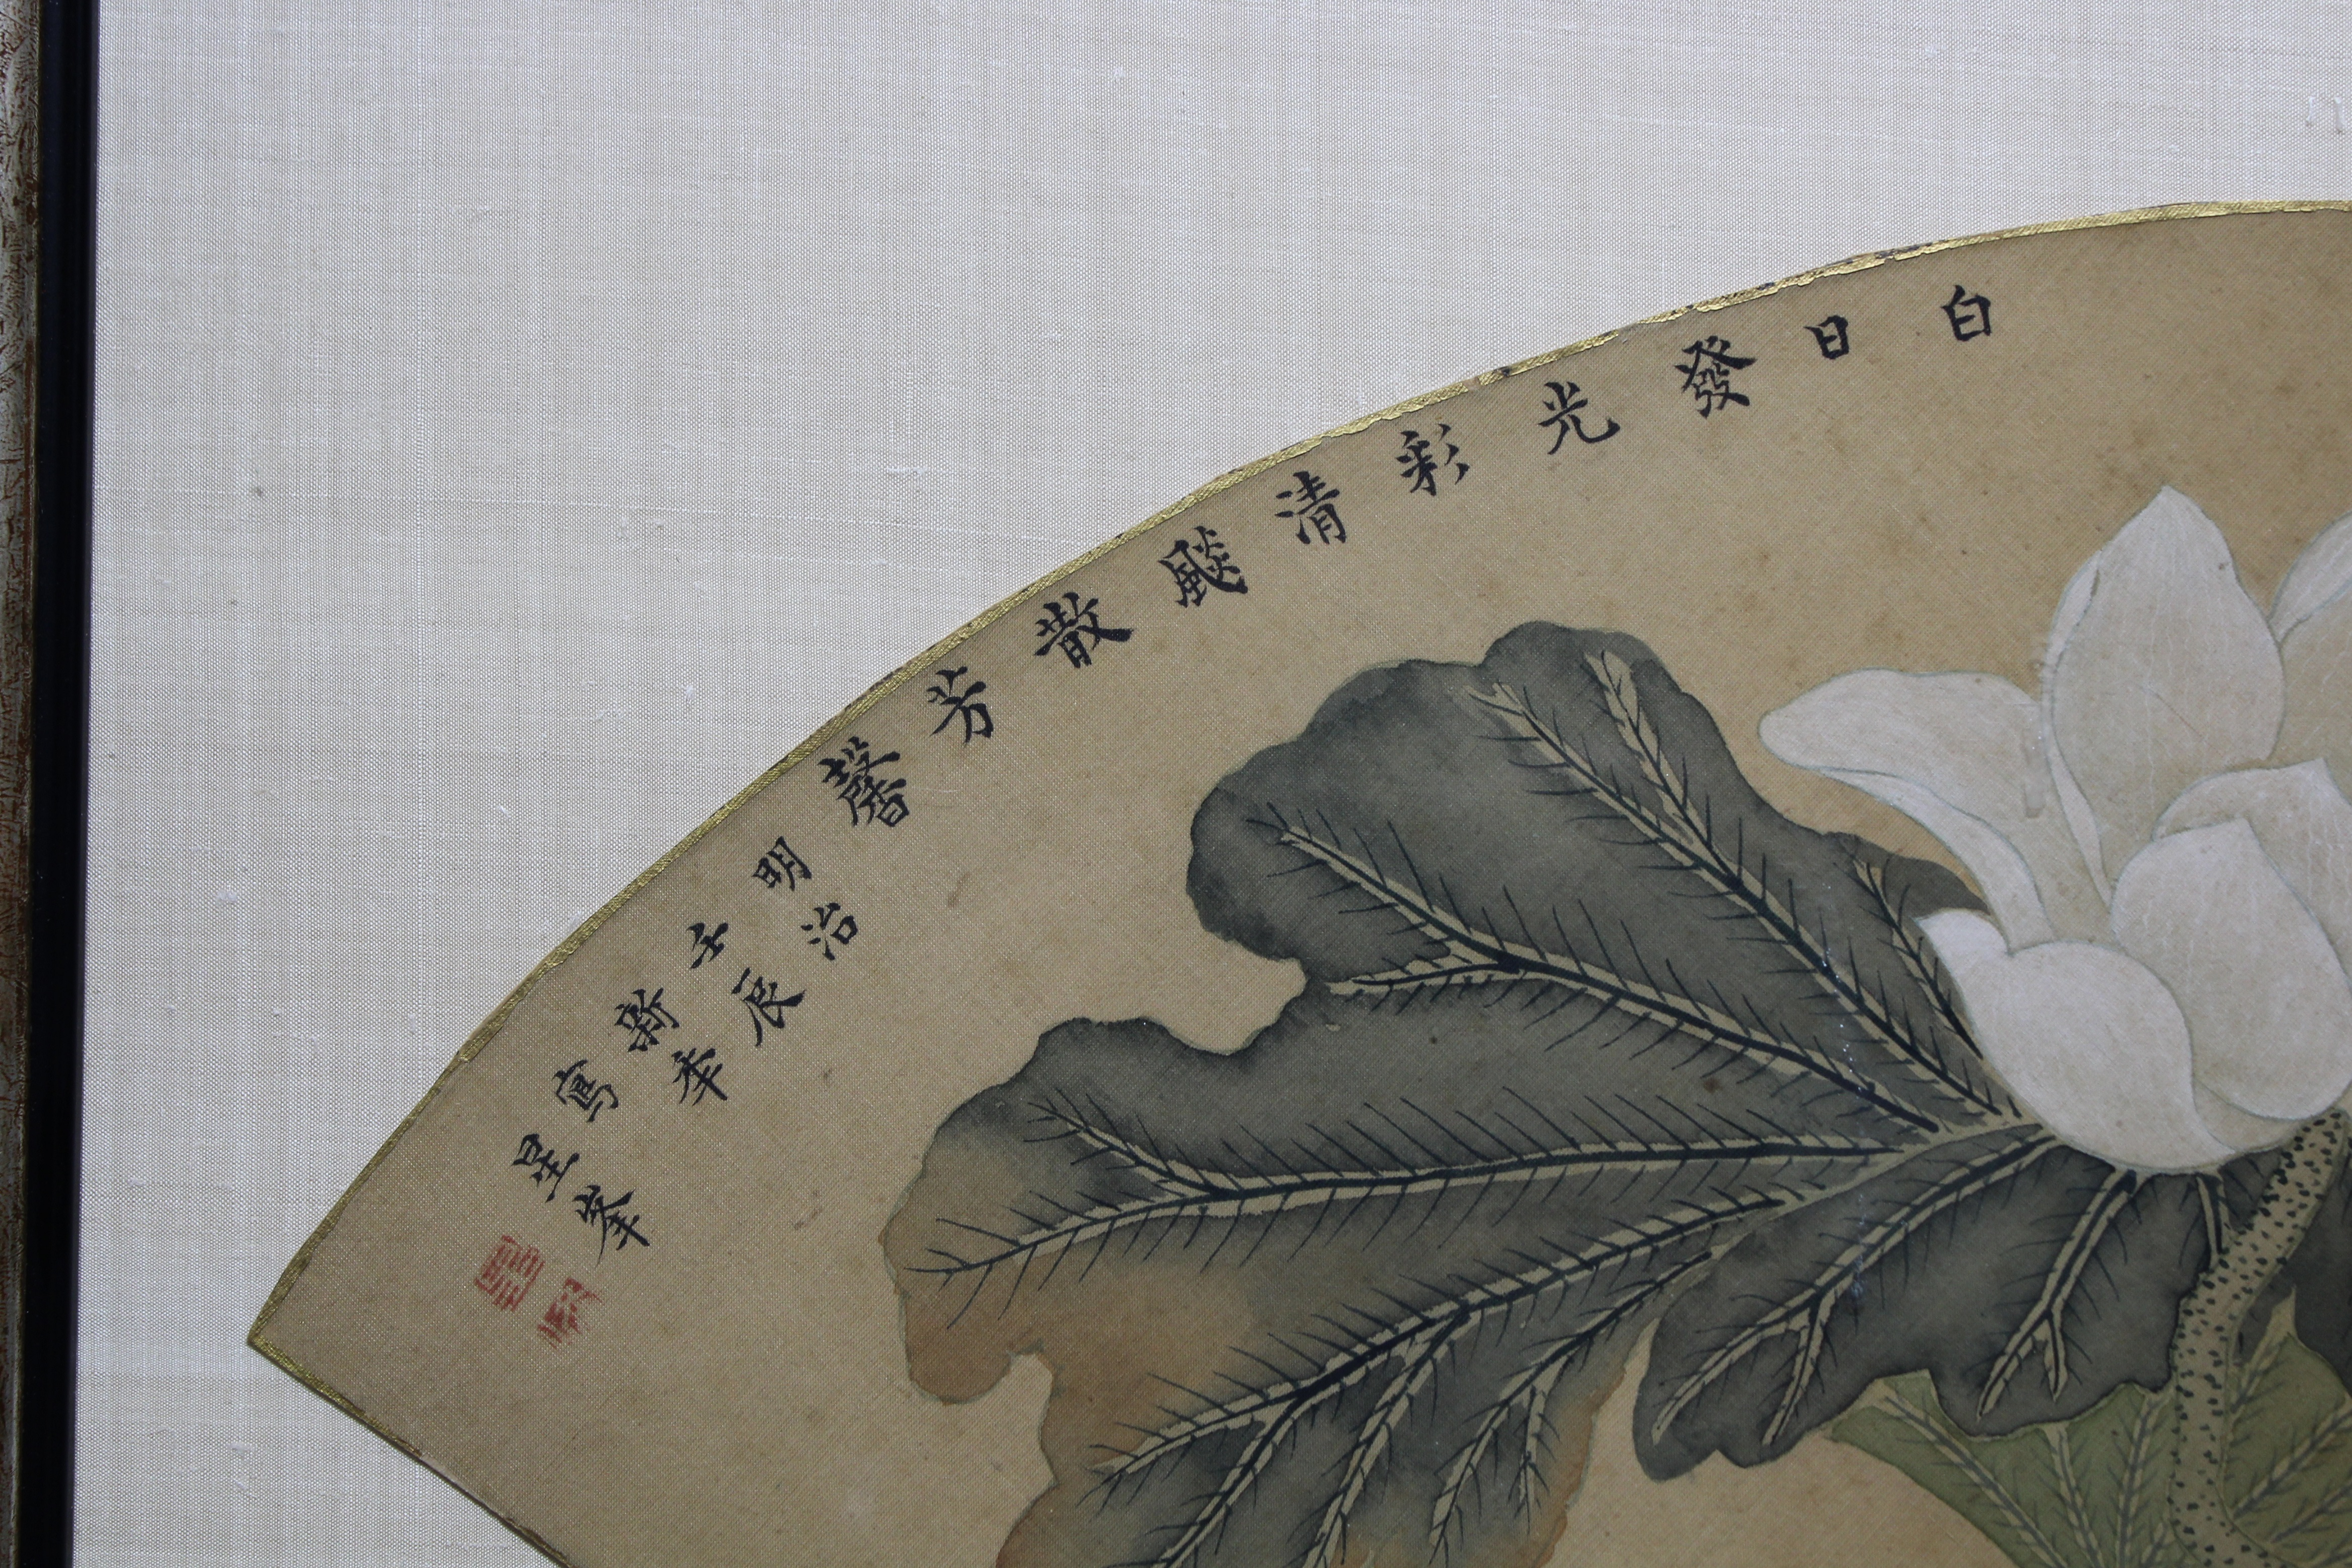 Lot 260 - Signed, Antique Chinese Watercolor of a Flower